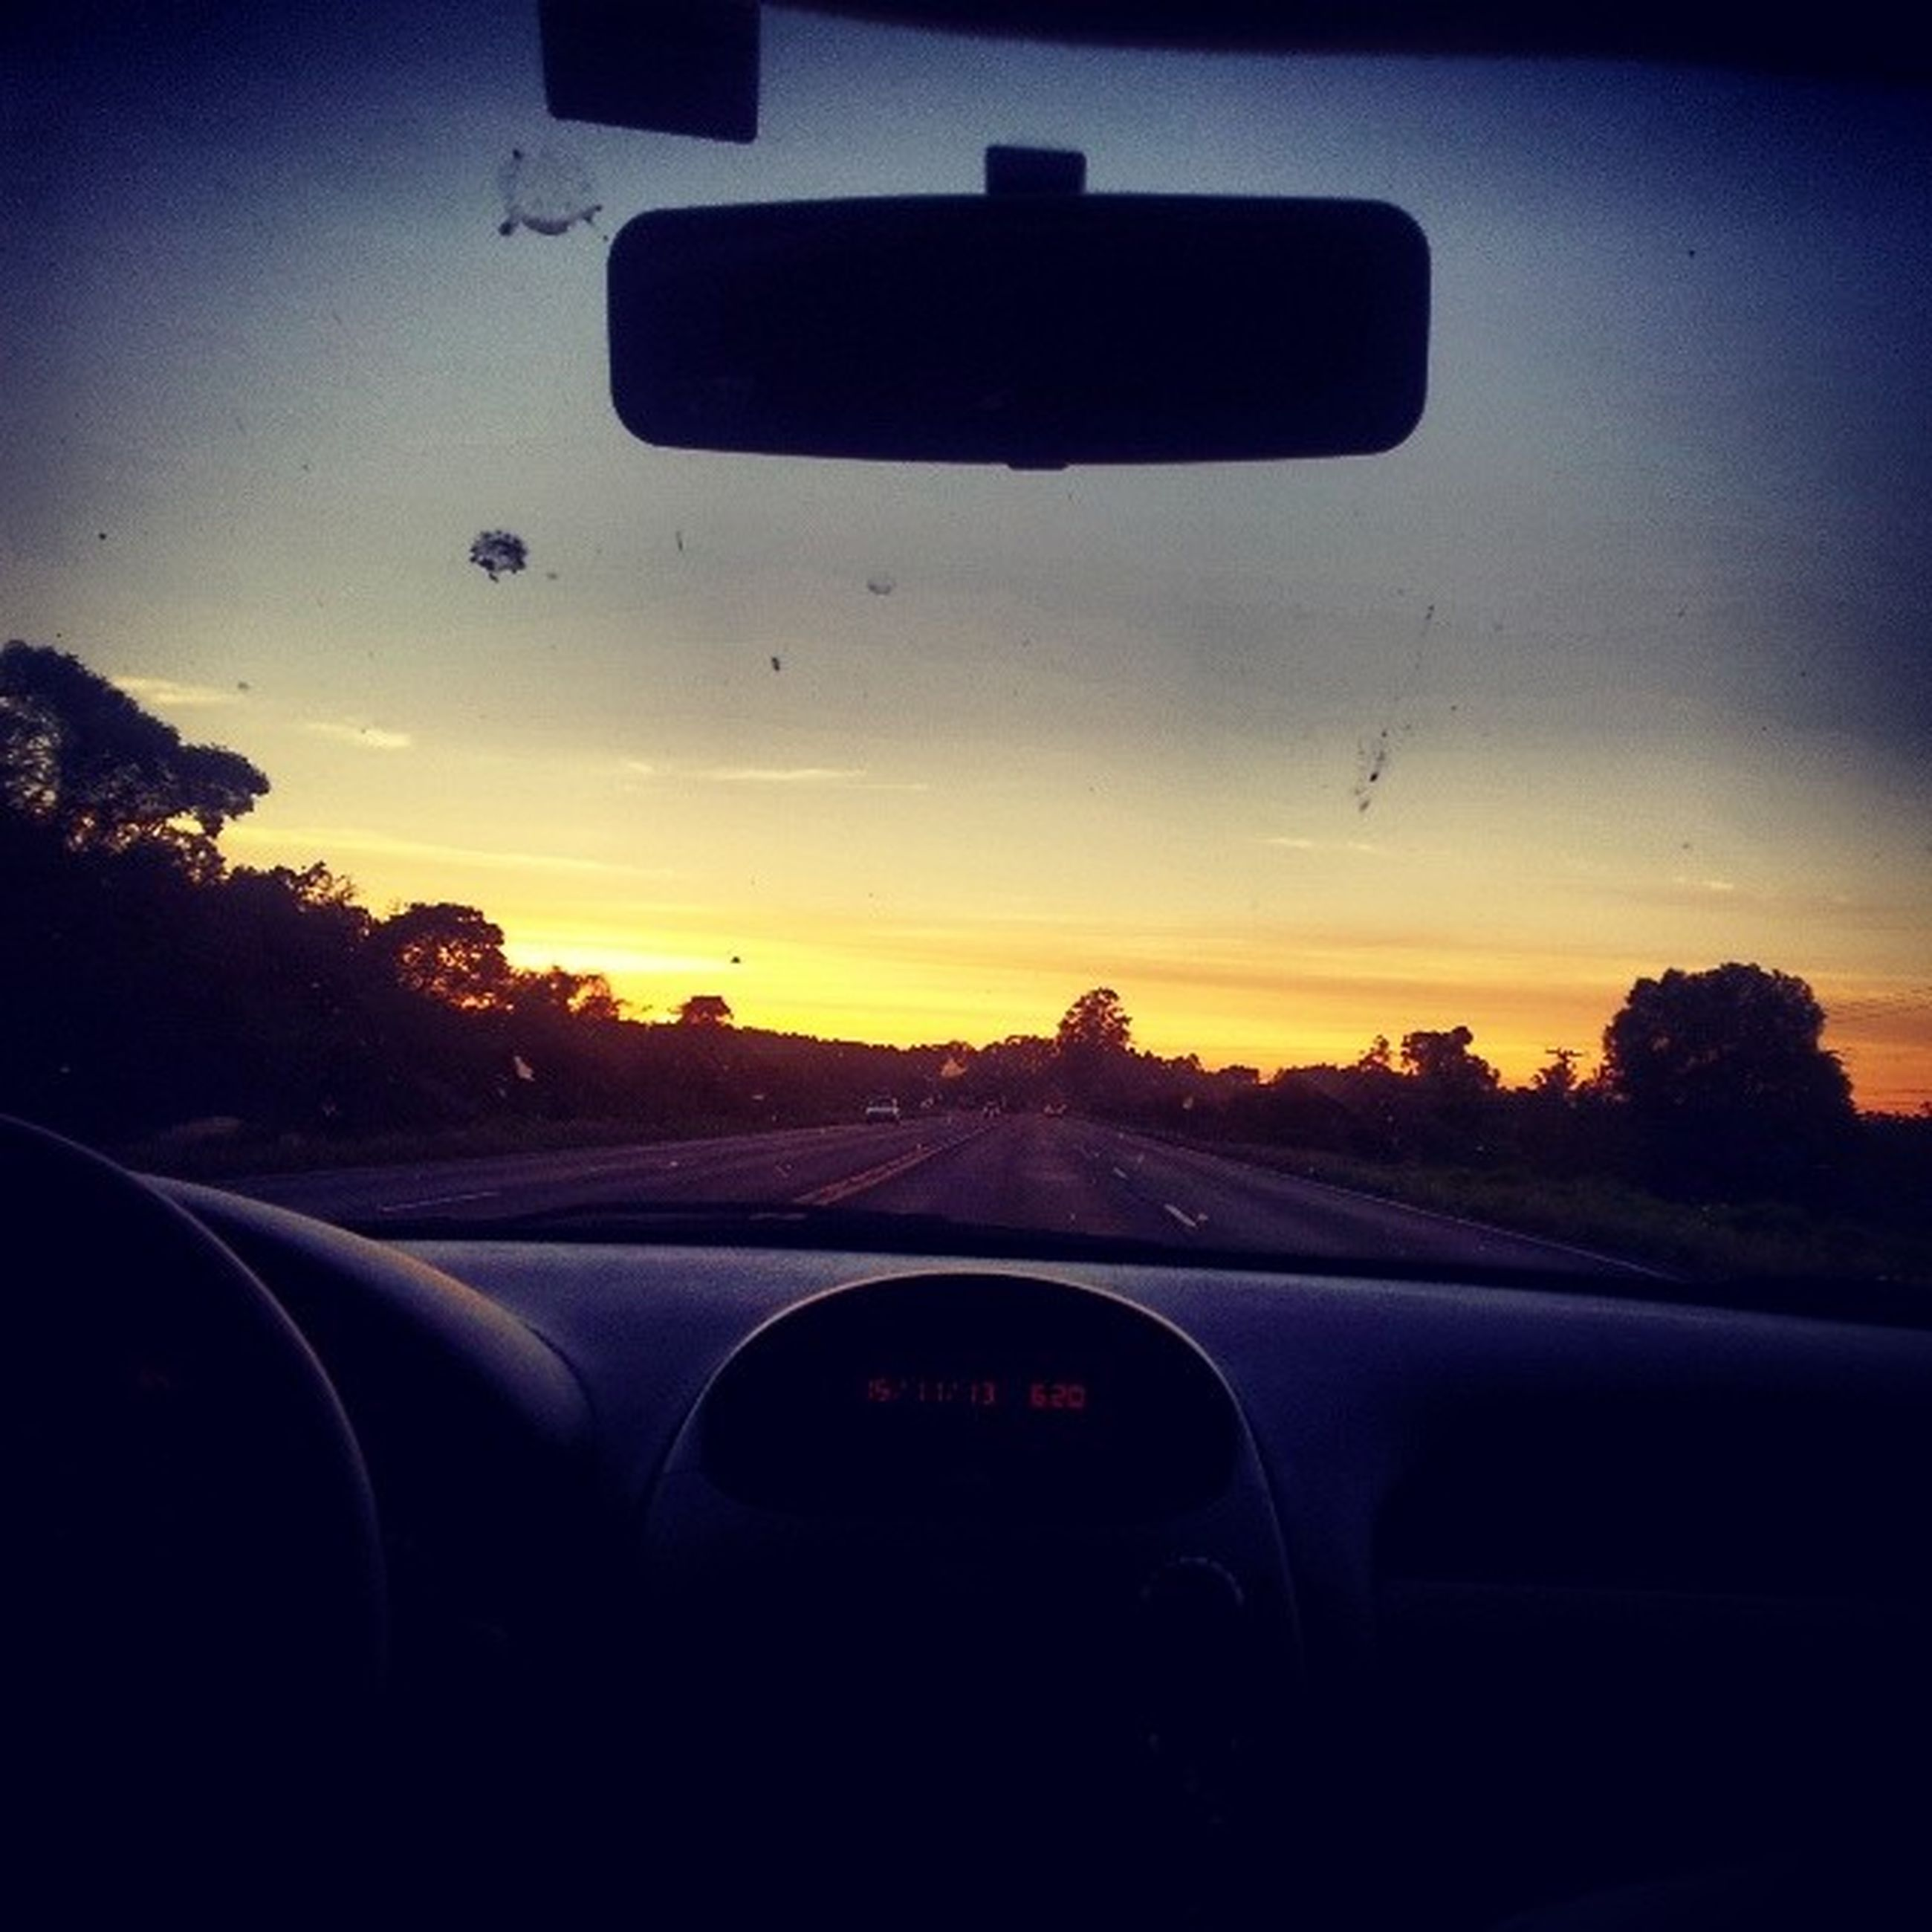 transportation, mode of transport, car, land vehicle, road, sunset, windshield, vehicle interior, car interior, on the move, travel, glass - material, sky, transparent, car point of view, tree, road trip, journey, road marking, part of